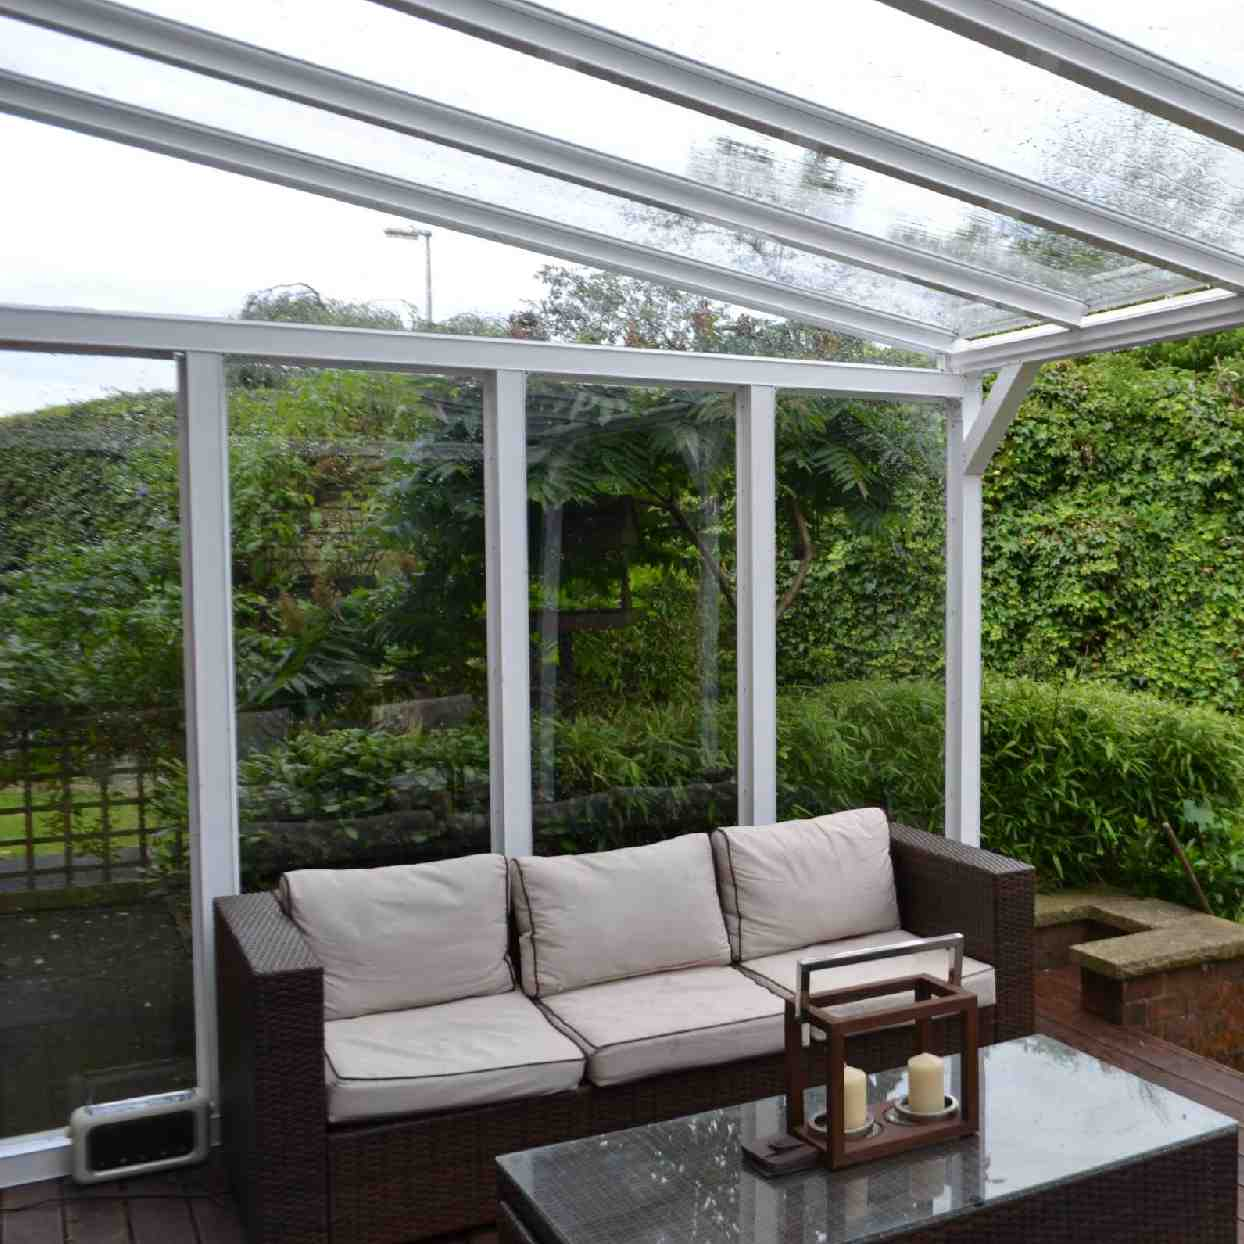 Buy Omega Verandah with 16mm Polycarbonate Glazing - 11.6m (W) x 2.0m (P), (5) Supporting Posts online today